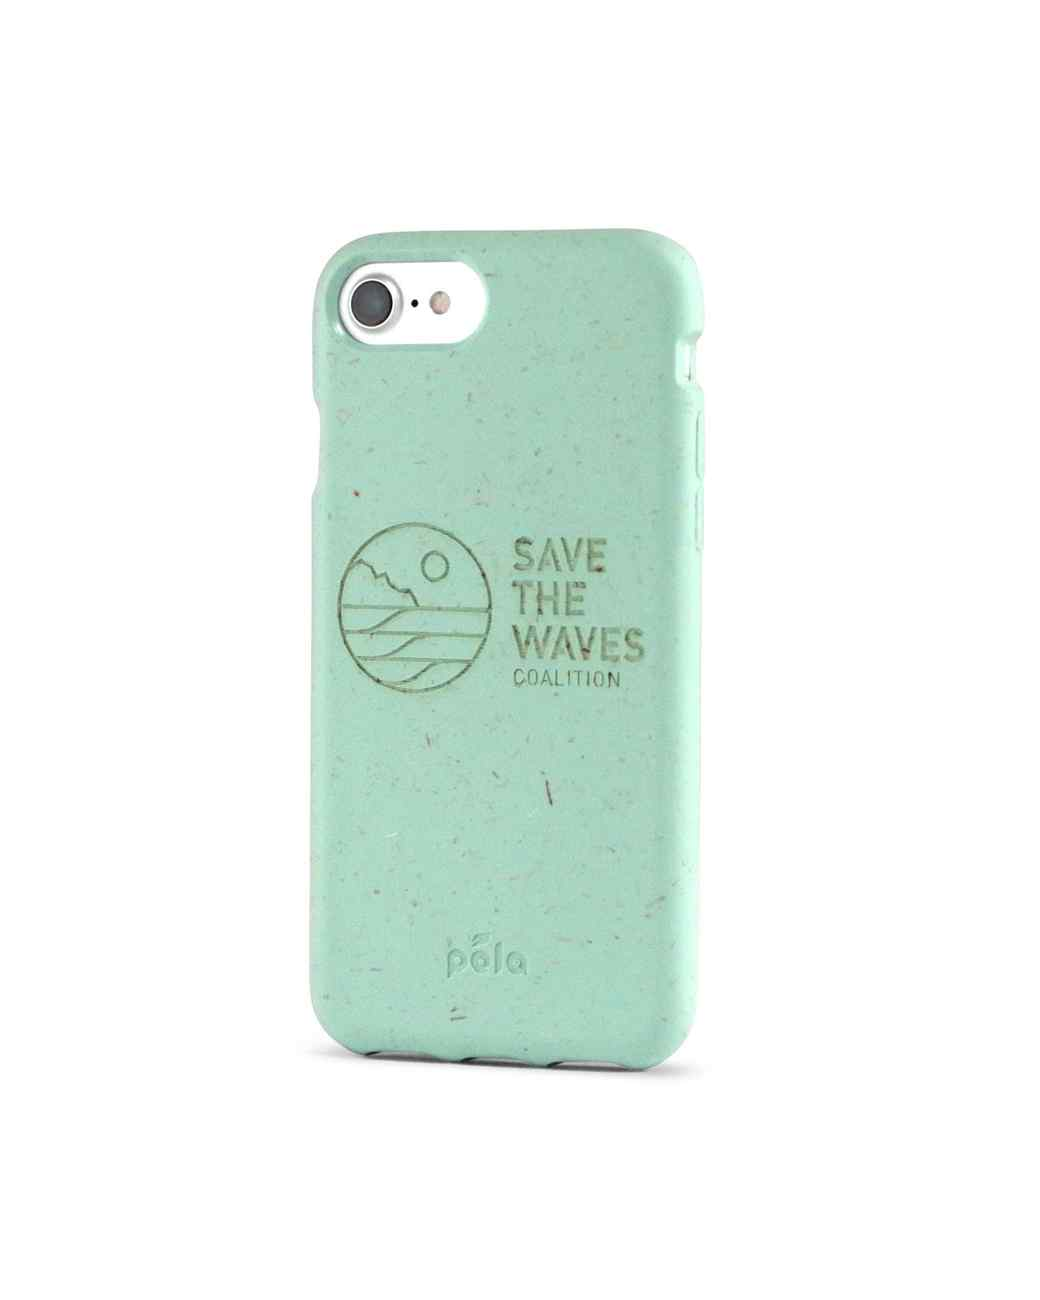 pela-compostable-phone-case-earth-day-0318